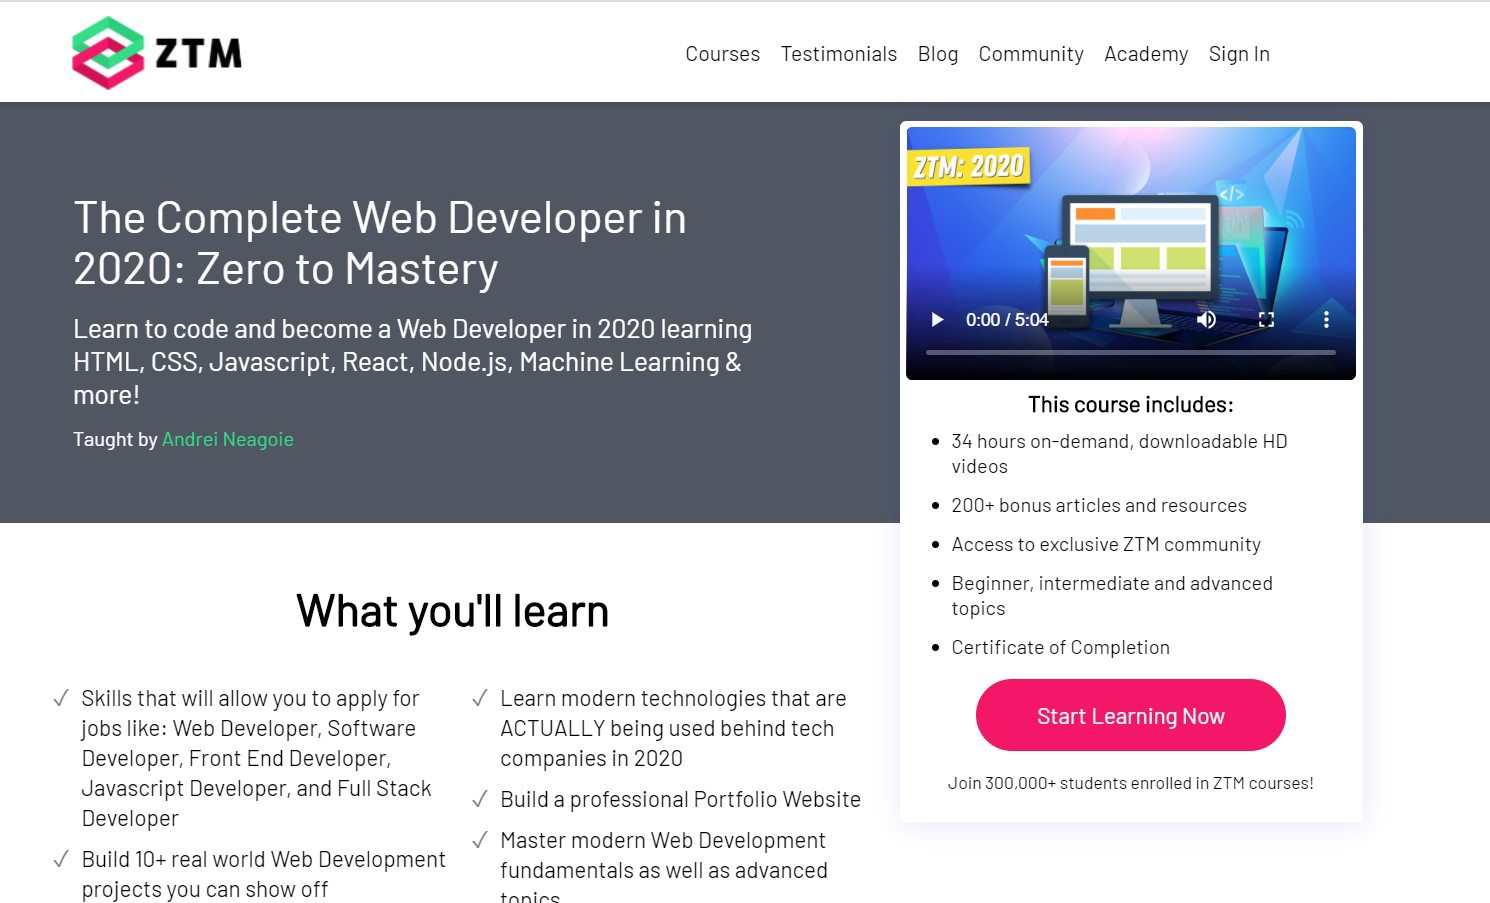 Screenshot of the main page of [The Complete Web Developer in 2020 course](https://academy.zerotomastery.io/p/complete-web-developer-zero-to-mastery)